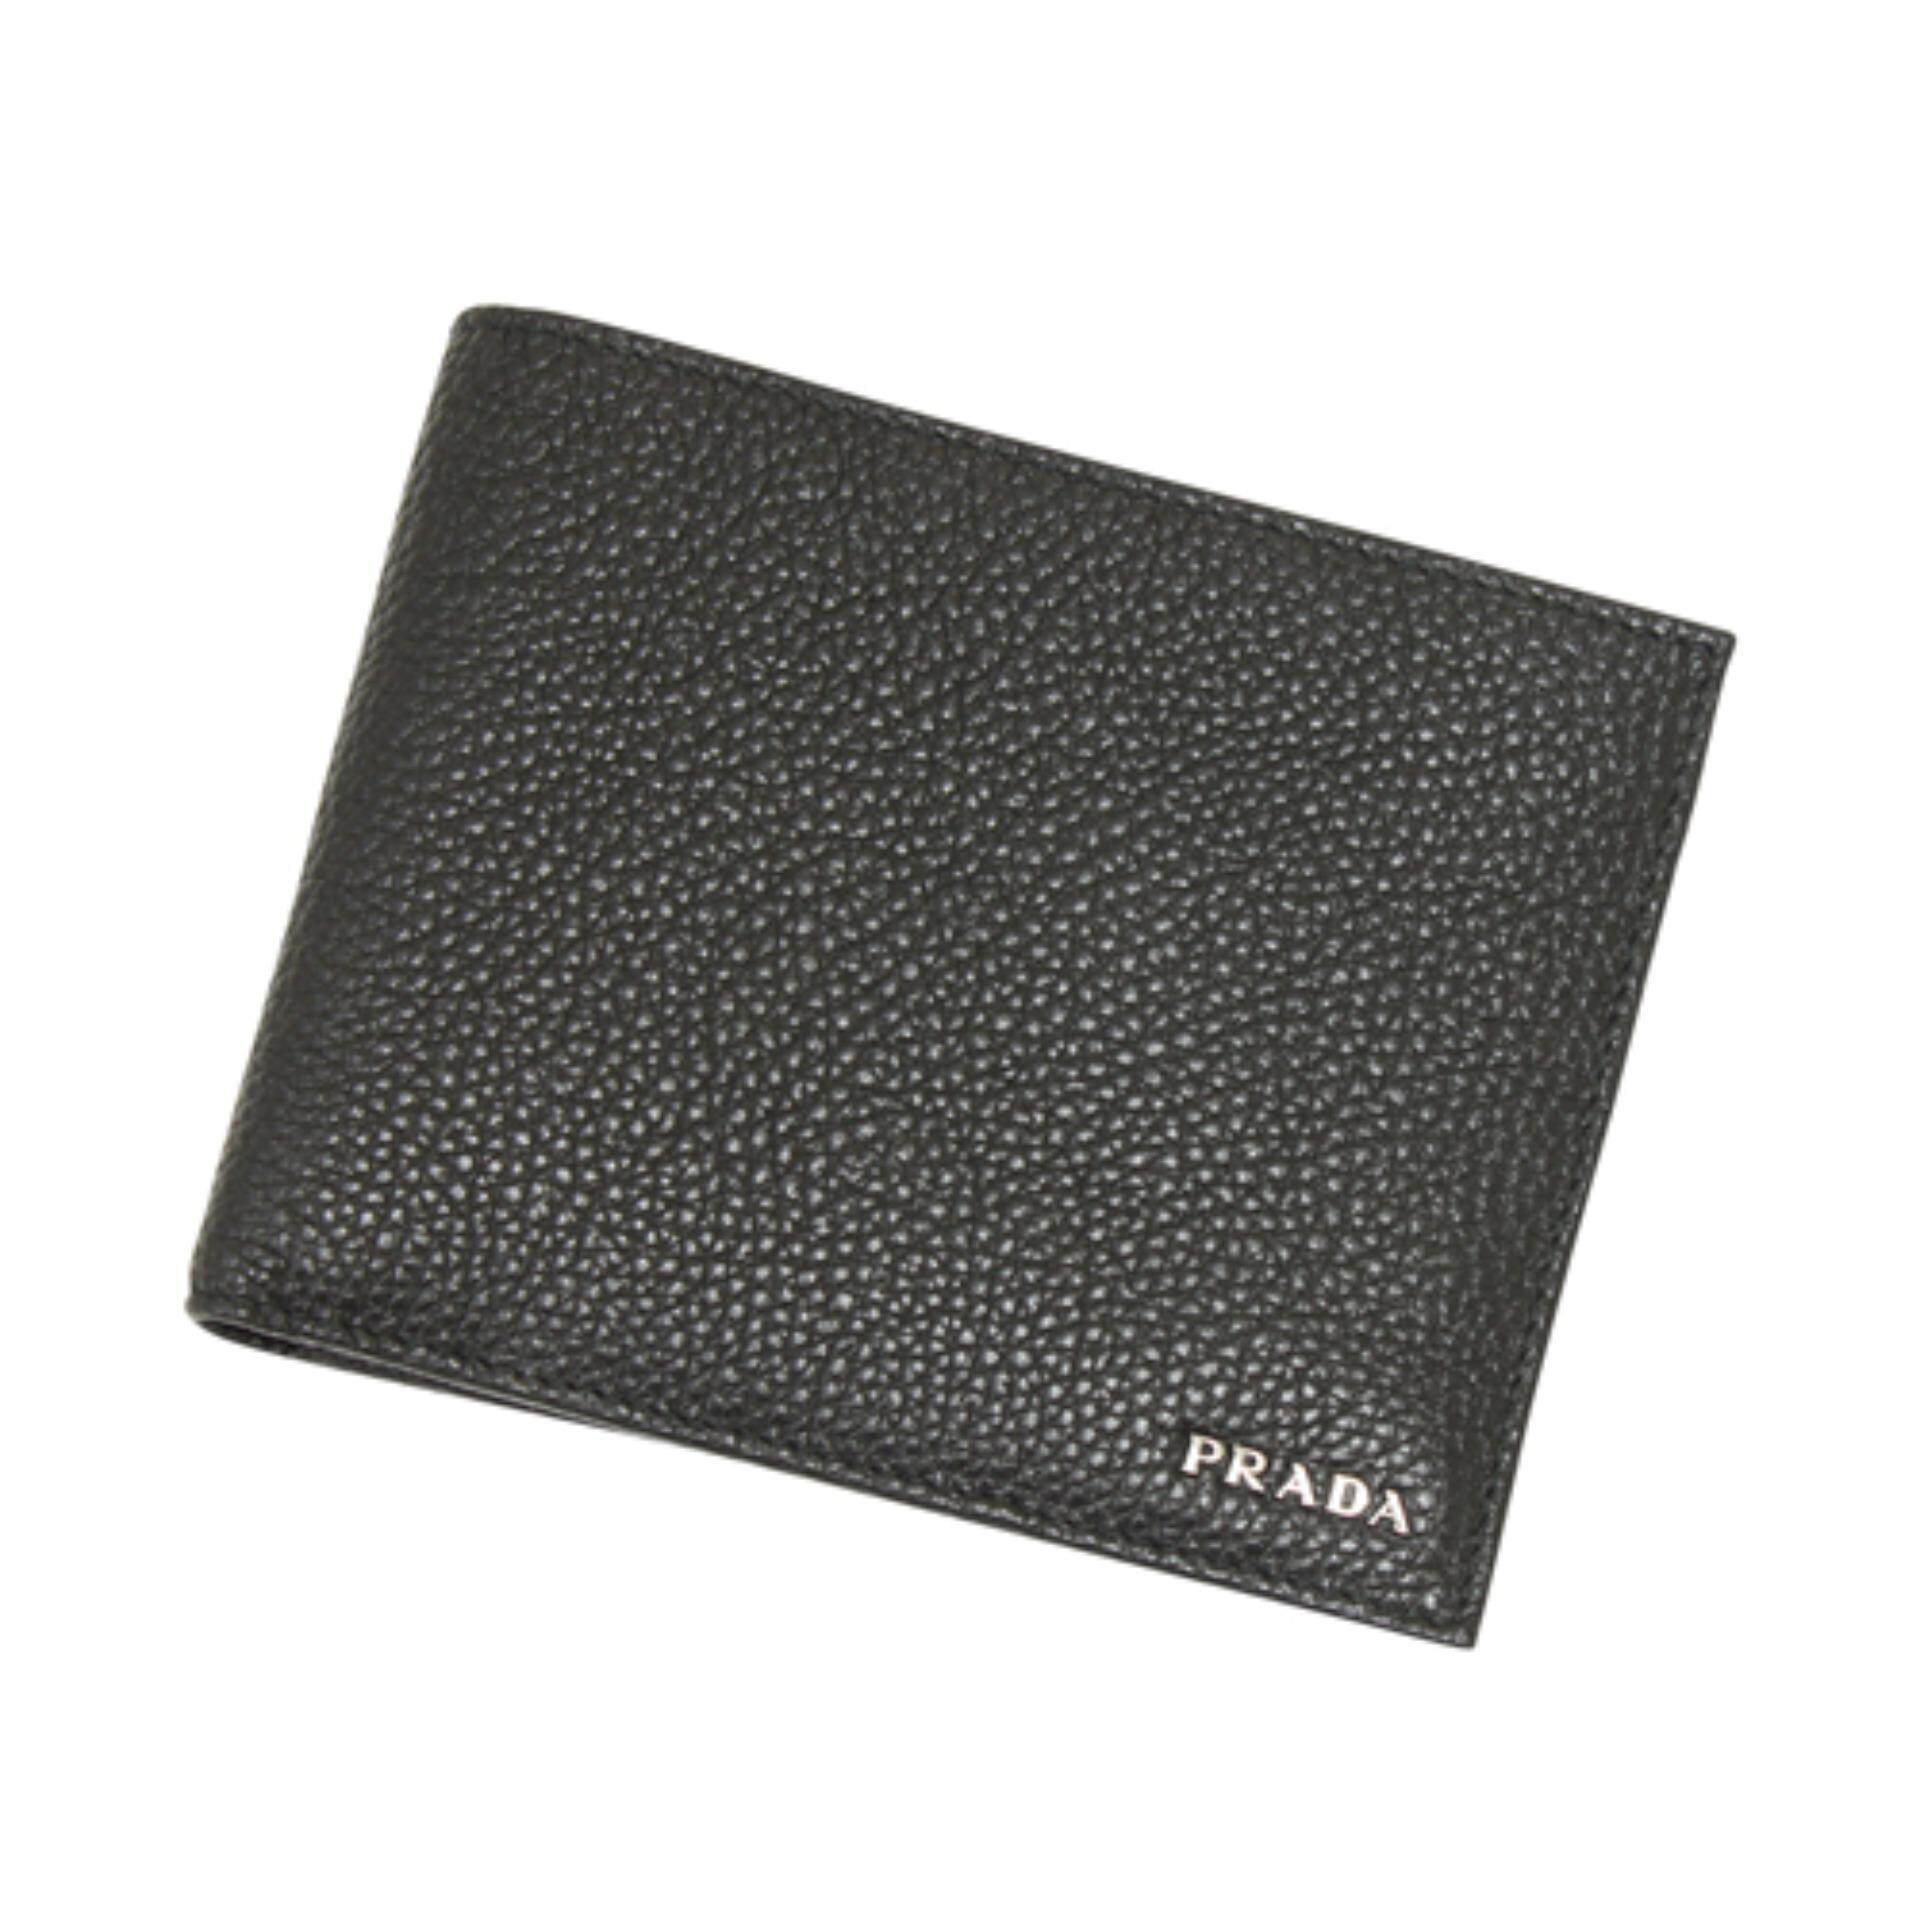 0be42915fe01a5 Latest Prada Men Fashion Wallets Products | Enjoy Huge Discounts ...